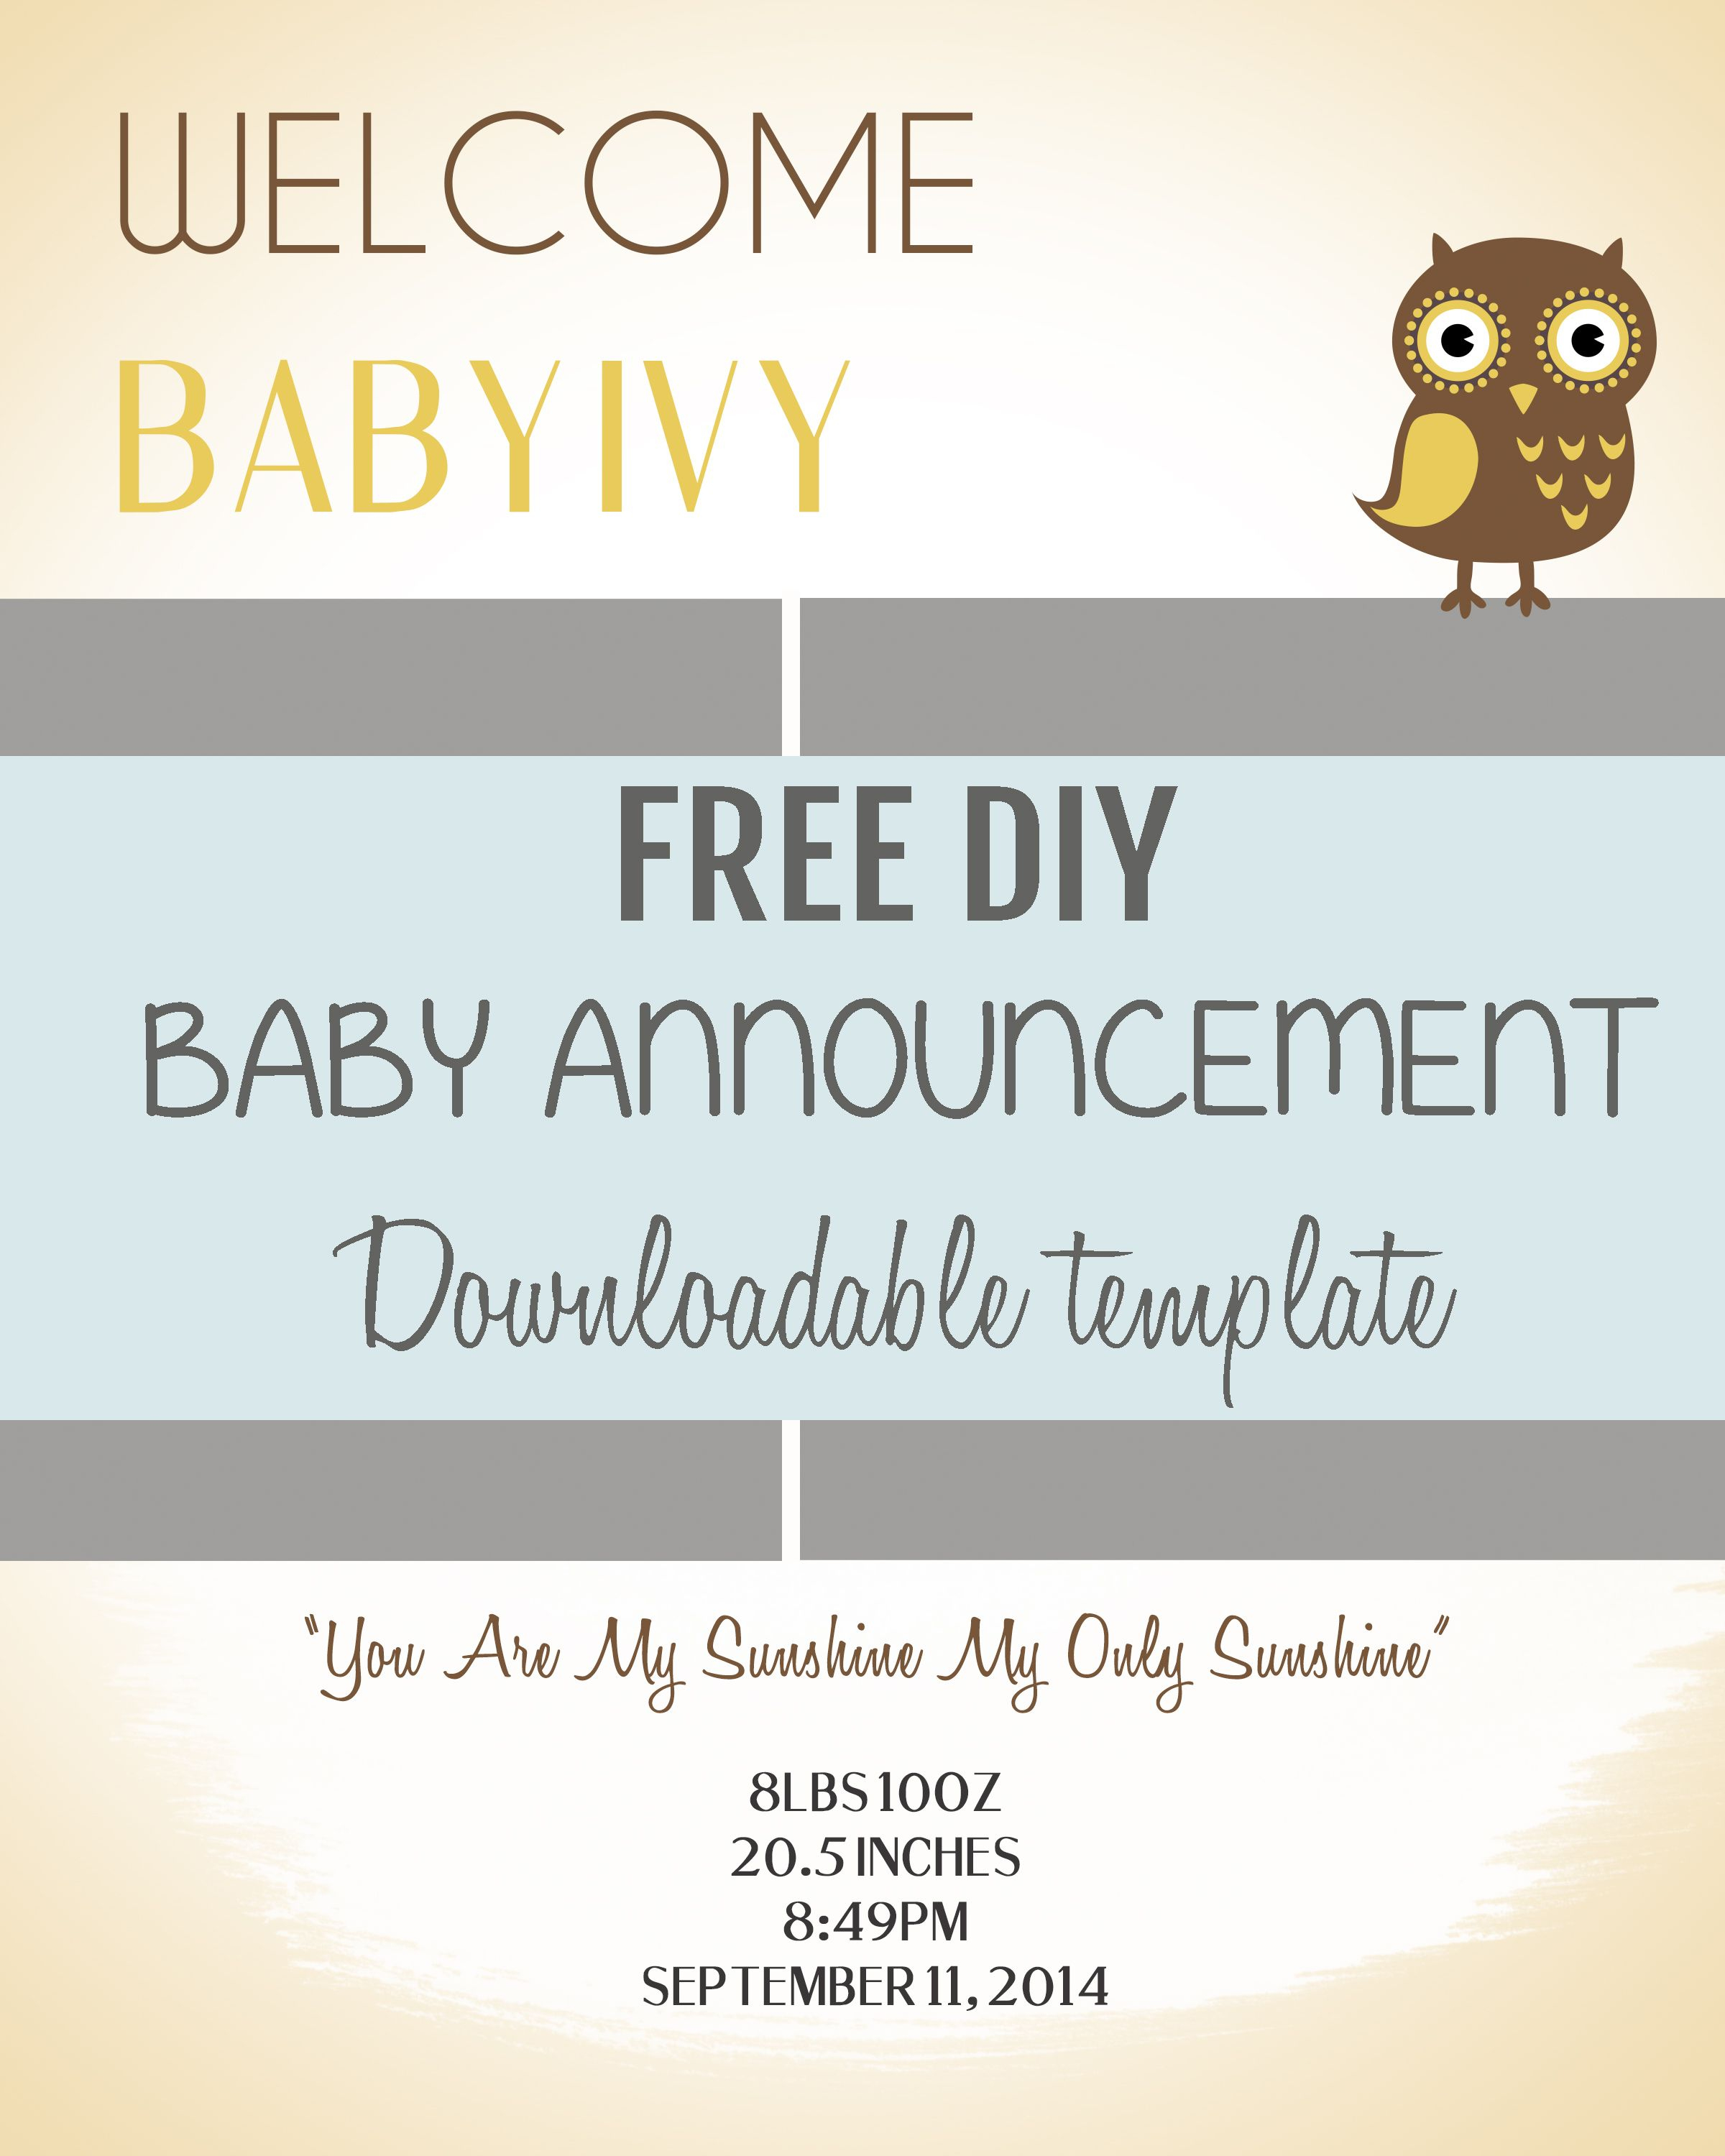 Free Baby Announcement Templates Printable Pregnancy Cards Best 25 - Free Printable Baby Birth Announcement Cards